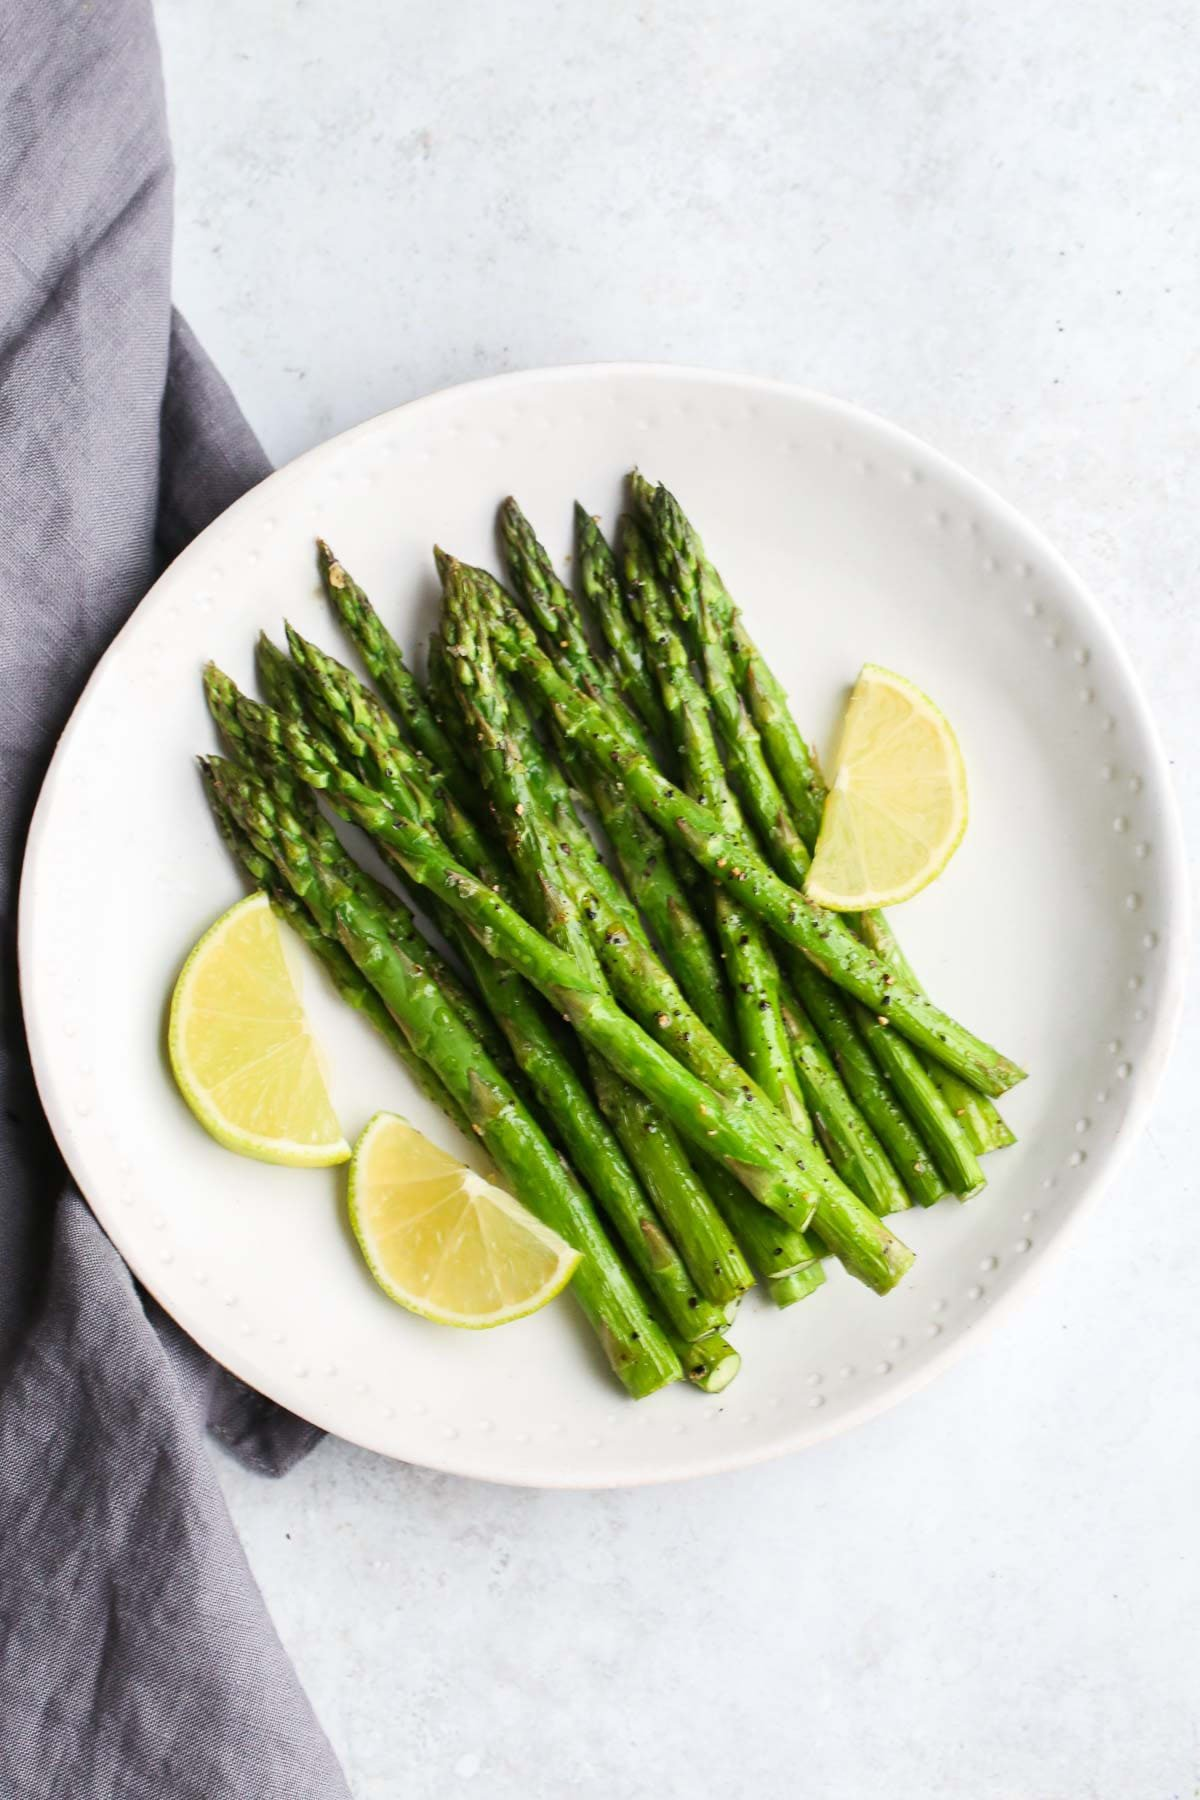 Crispy air fryer asparagus served with lemon wedges on a white plate.